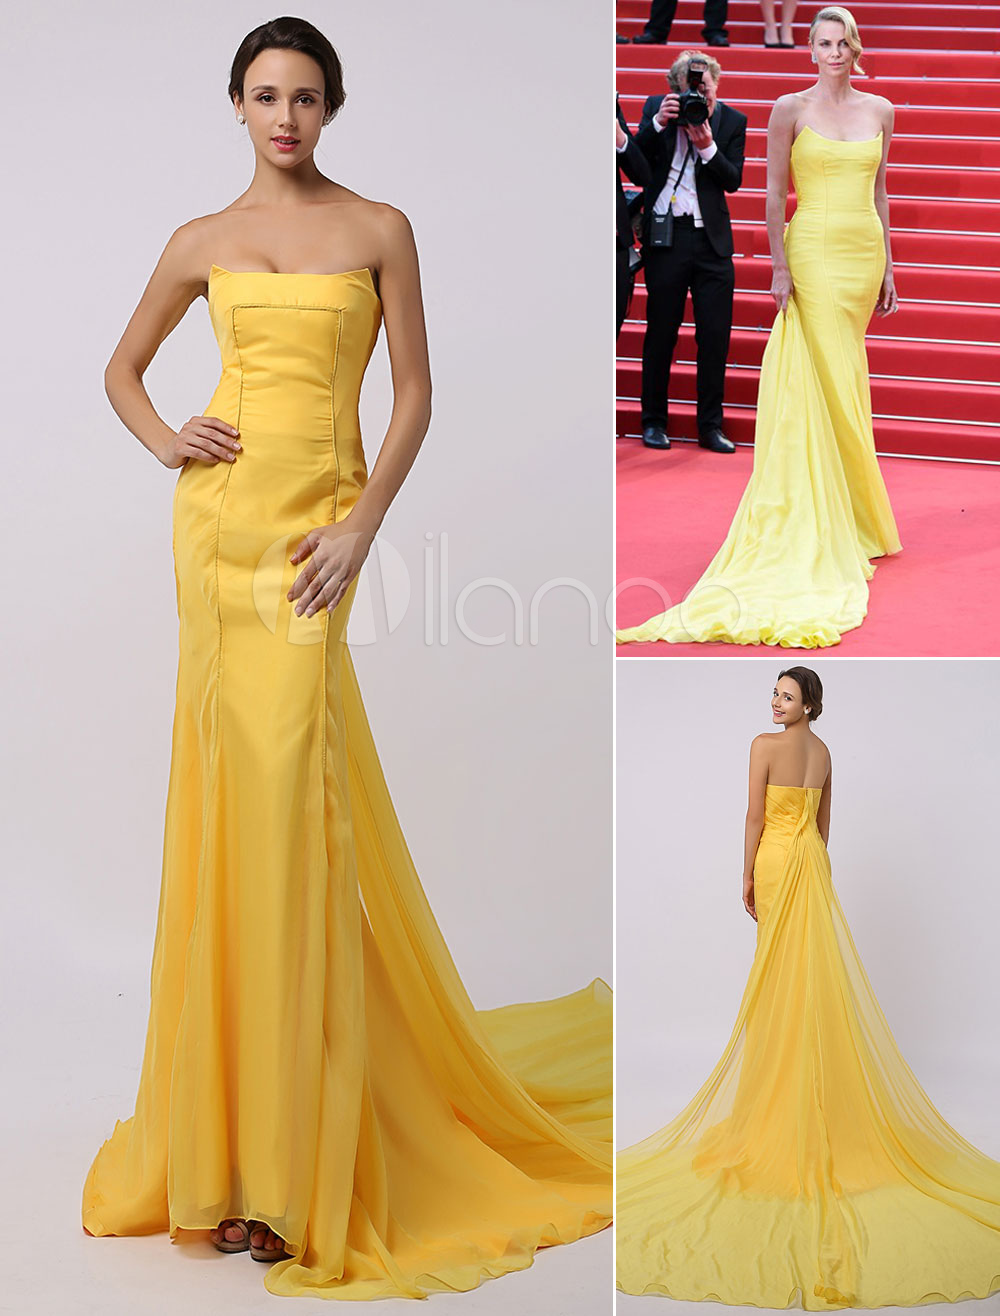 Charlize Theron Cannes Golden Chiffon Strapless Mermaid Gown with Long Train